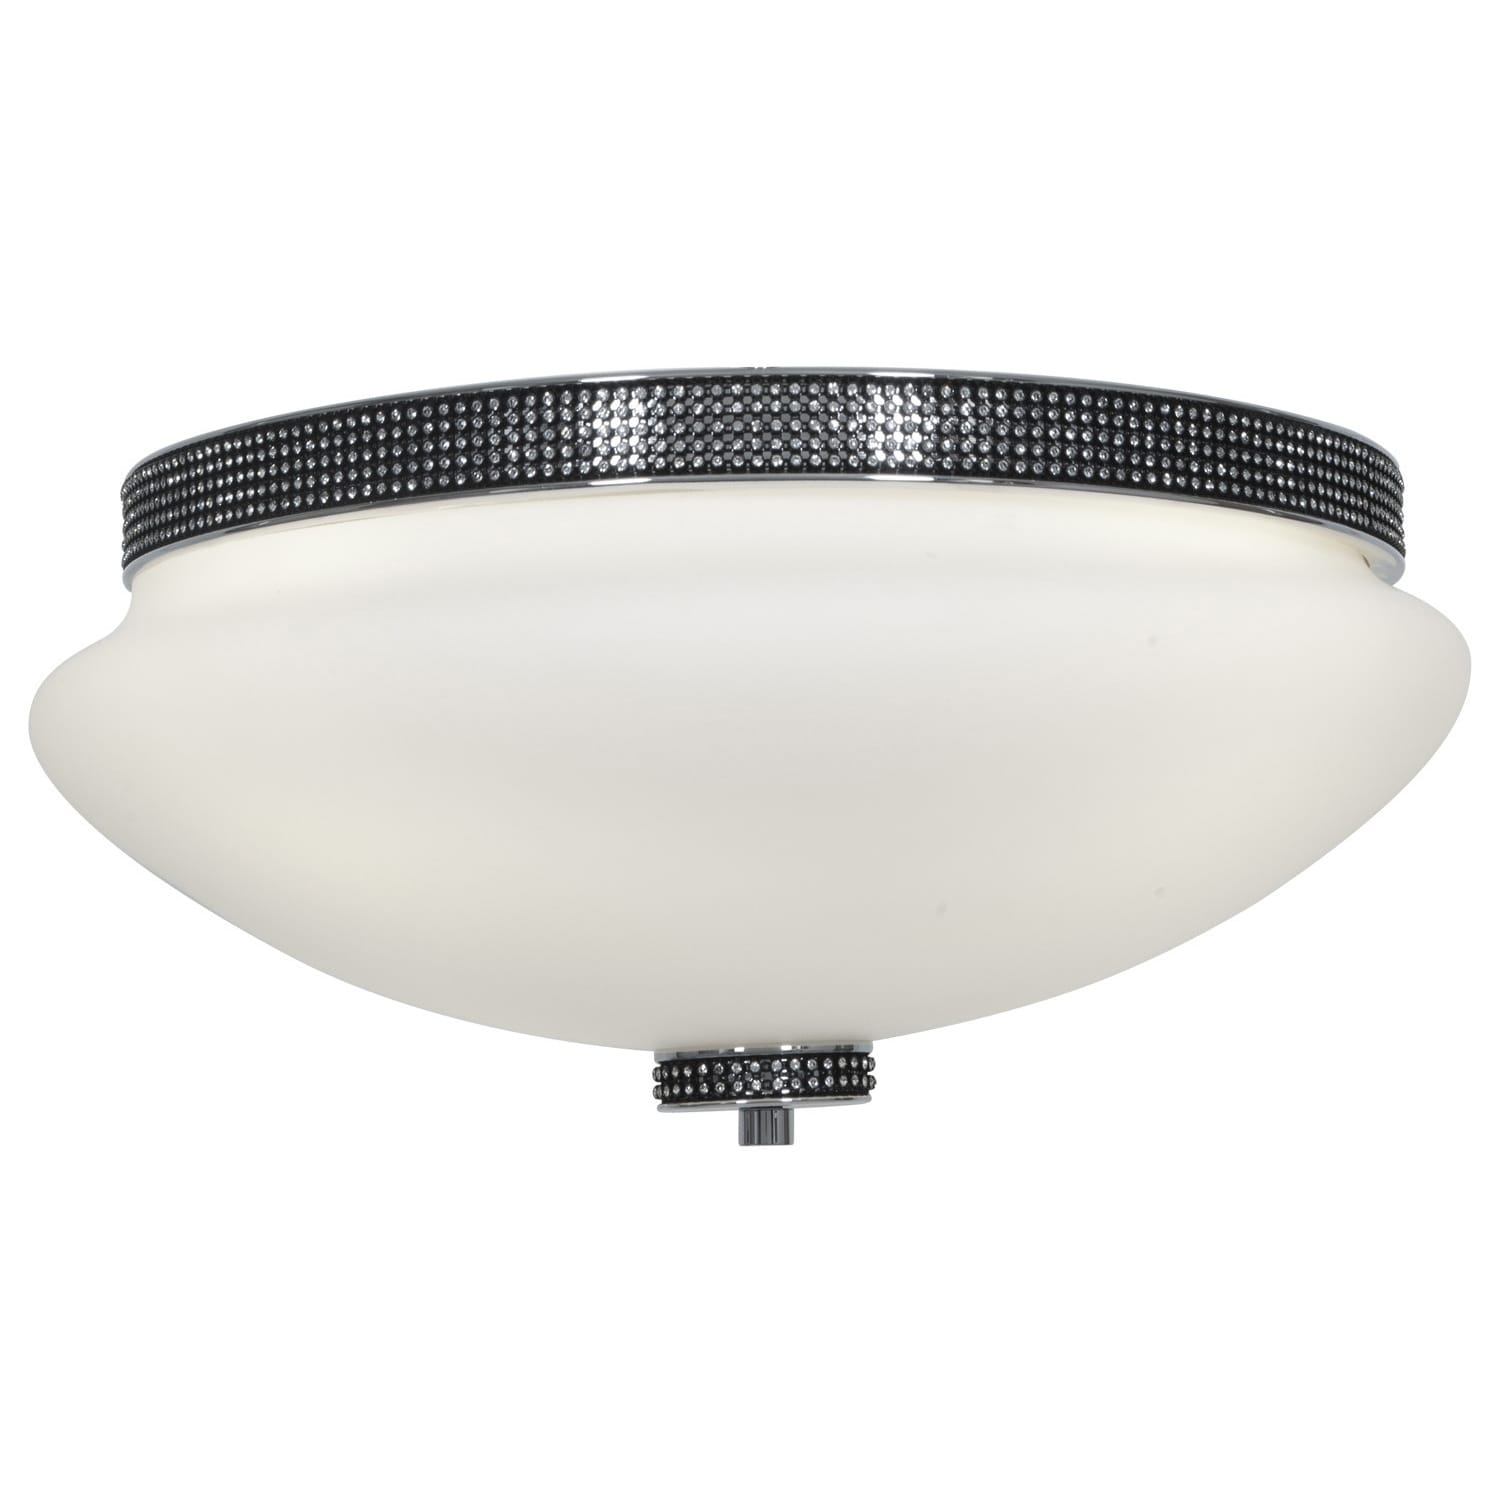 Access Onyx 3-light Chrome 16.5-inch Flush Mount